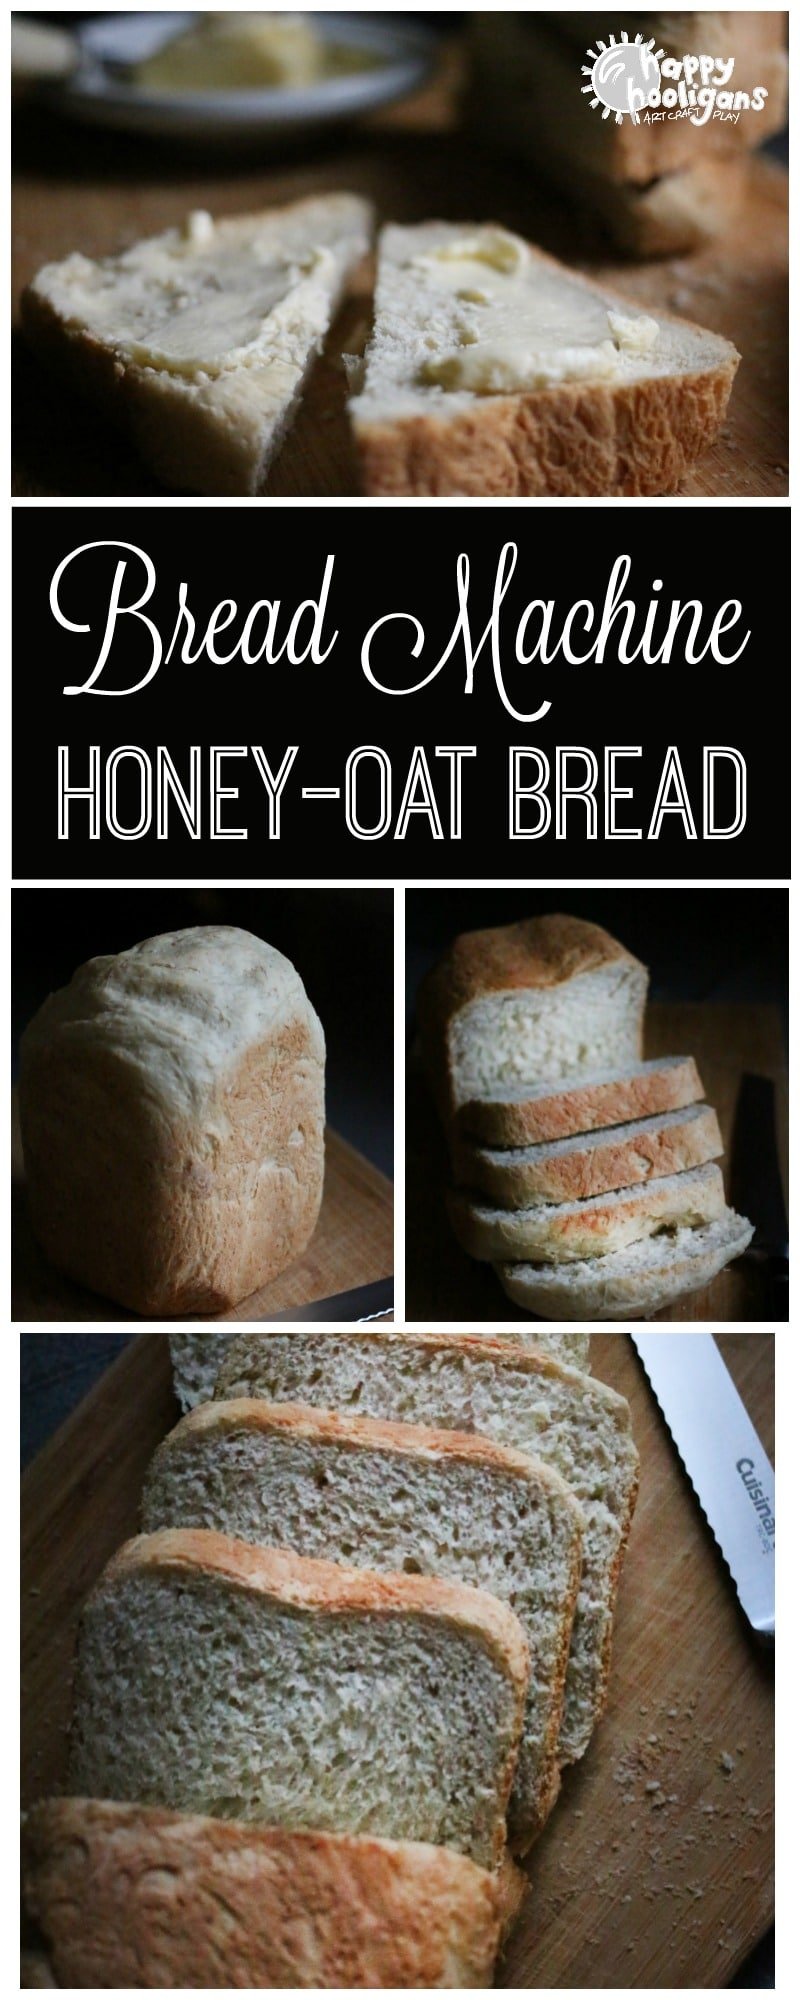 Make the best honey-oat bread, start to finish, in your bread machine. Soft and fluffy, this delicious homemade bread is perfect for dunking in soups, making sandwiches, or serving as a side with dinner - Happy Hooligans